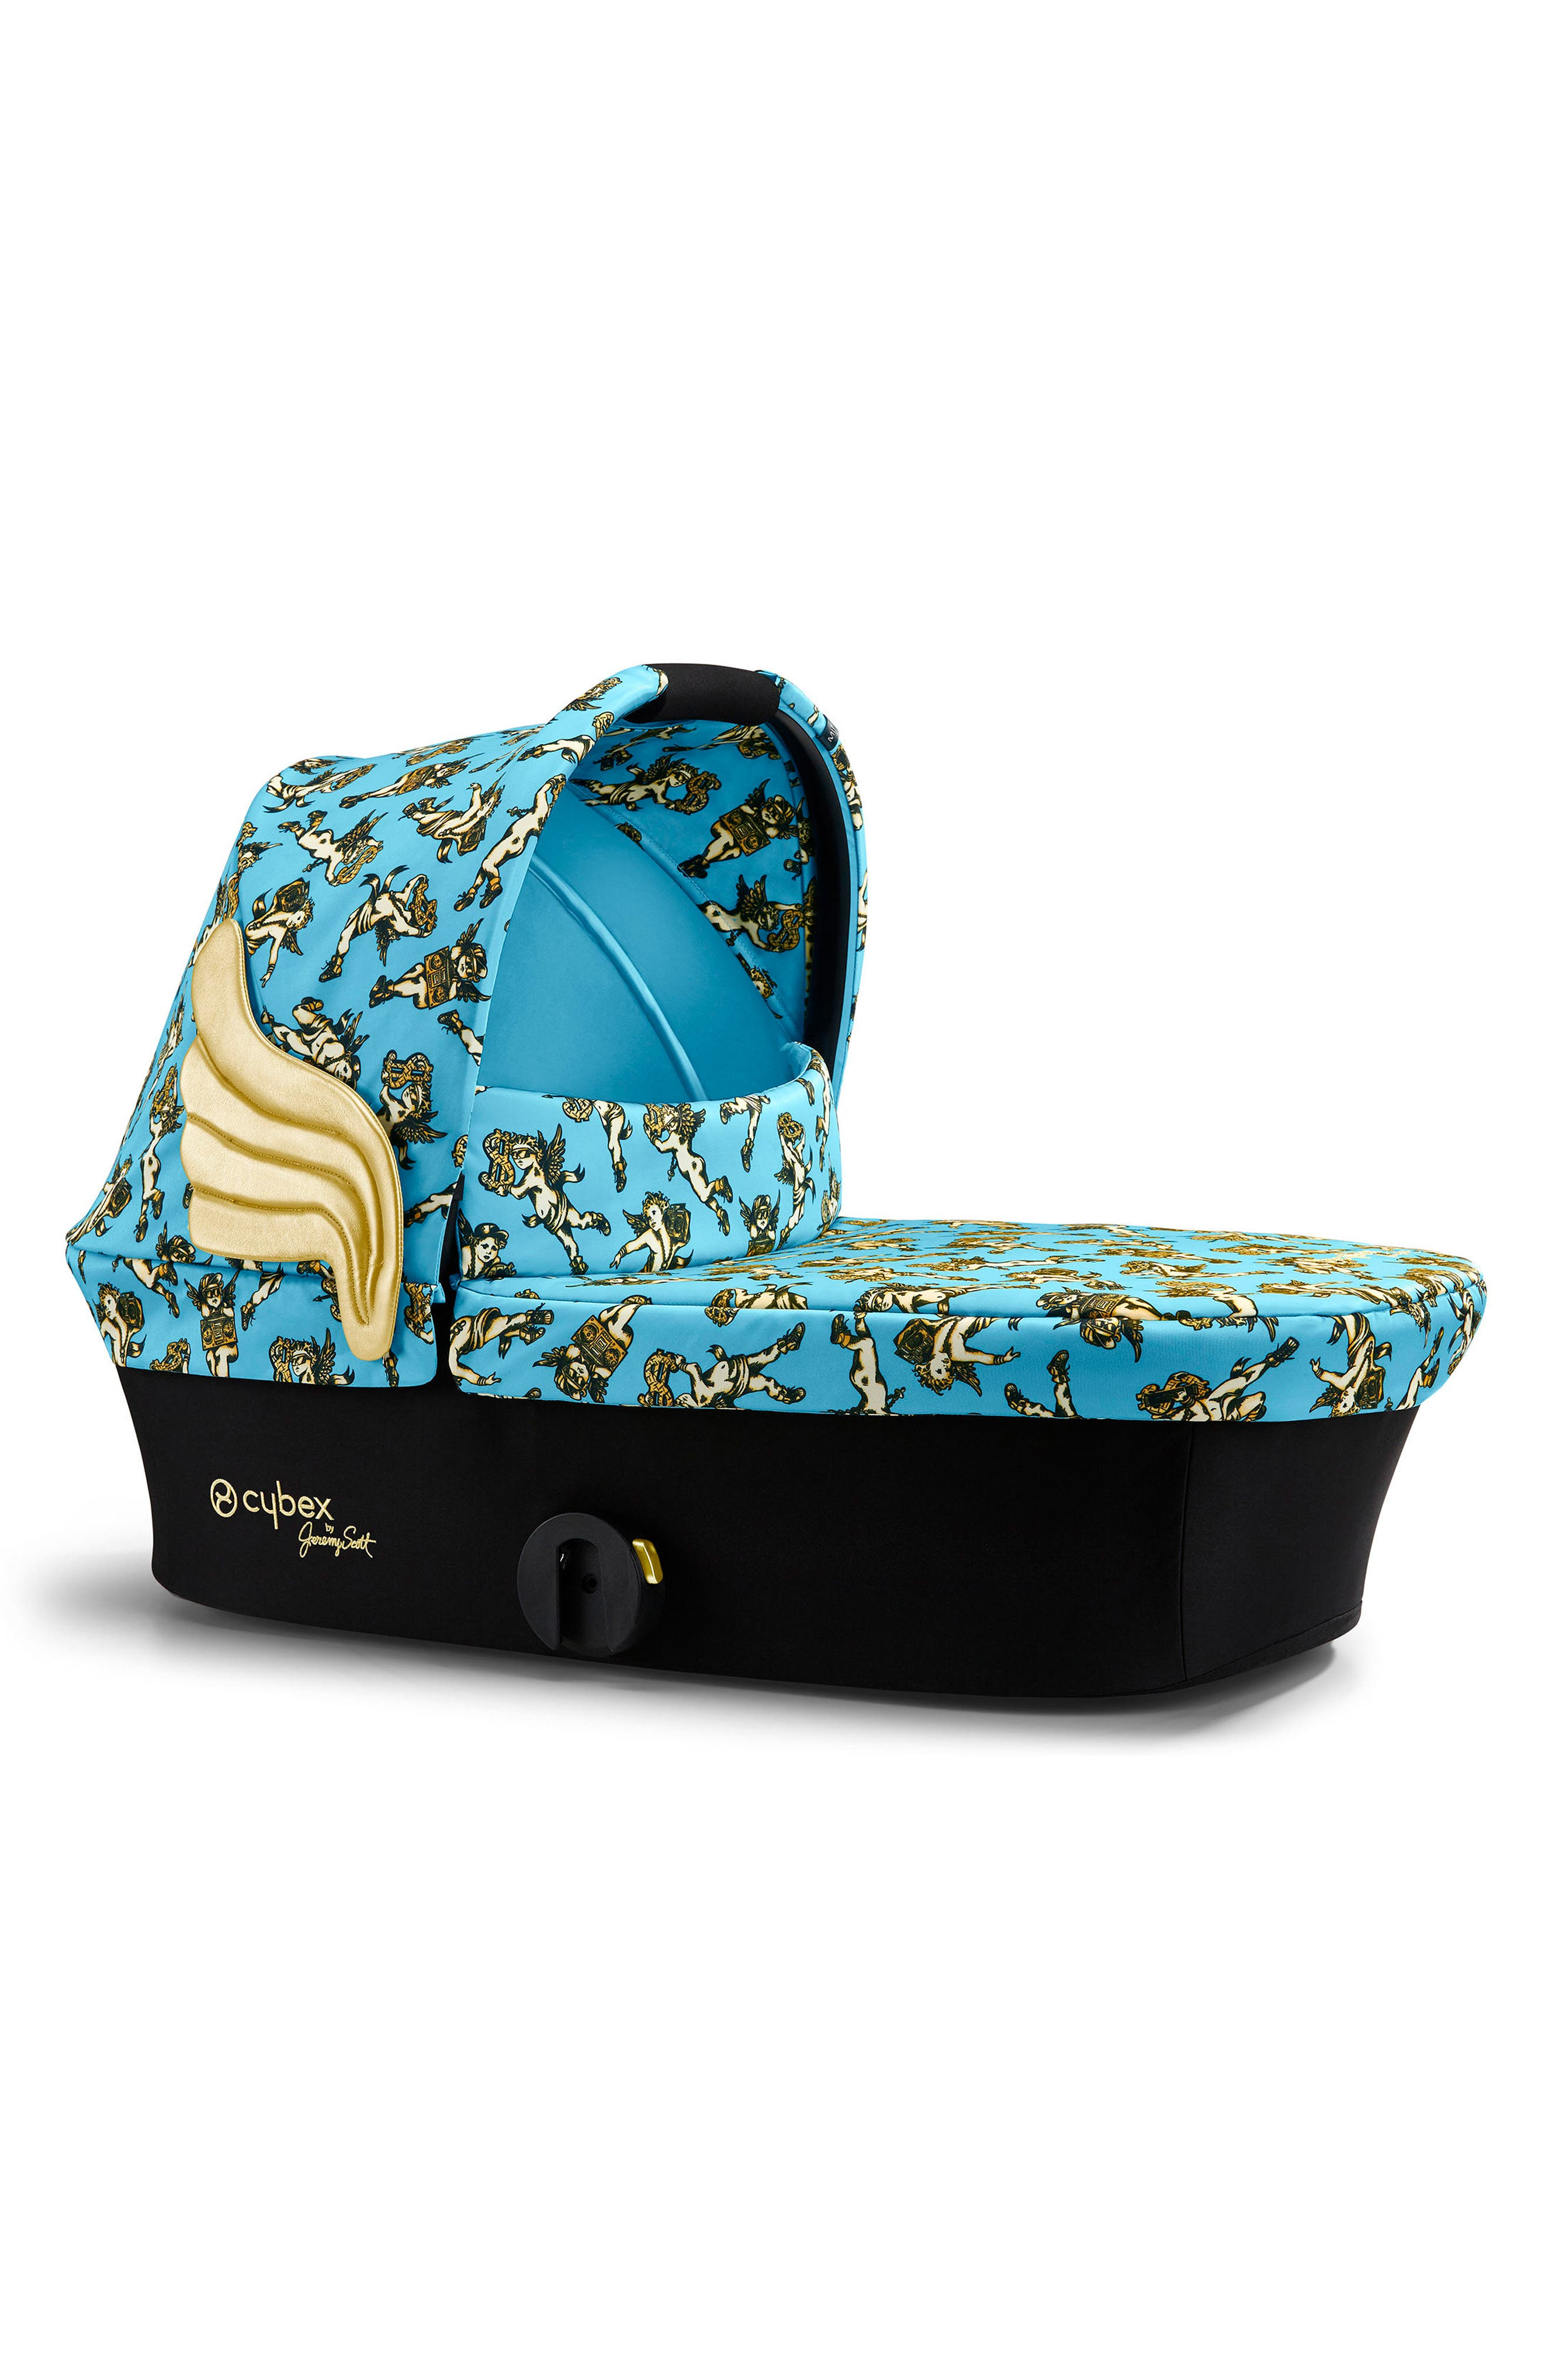 x Jeremy Scott Priam Cherub Carry Cot,                         Main,                         color, Blue